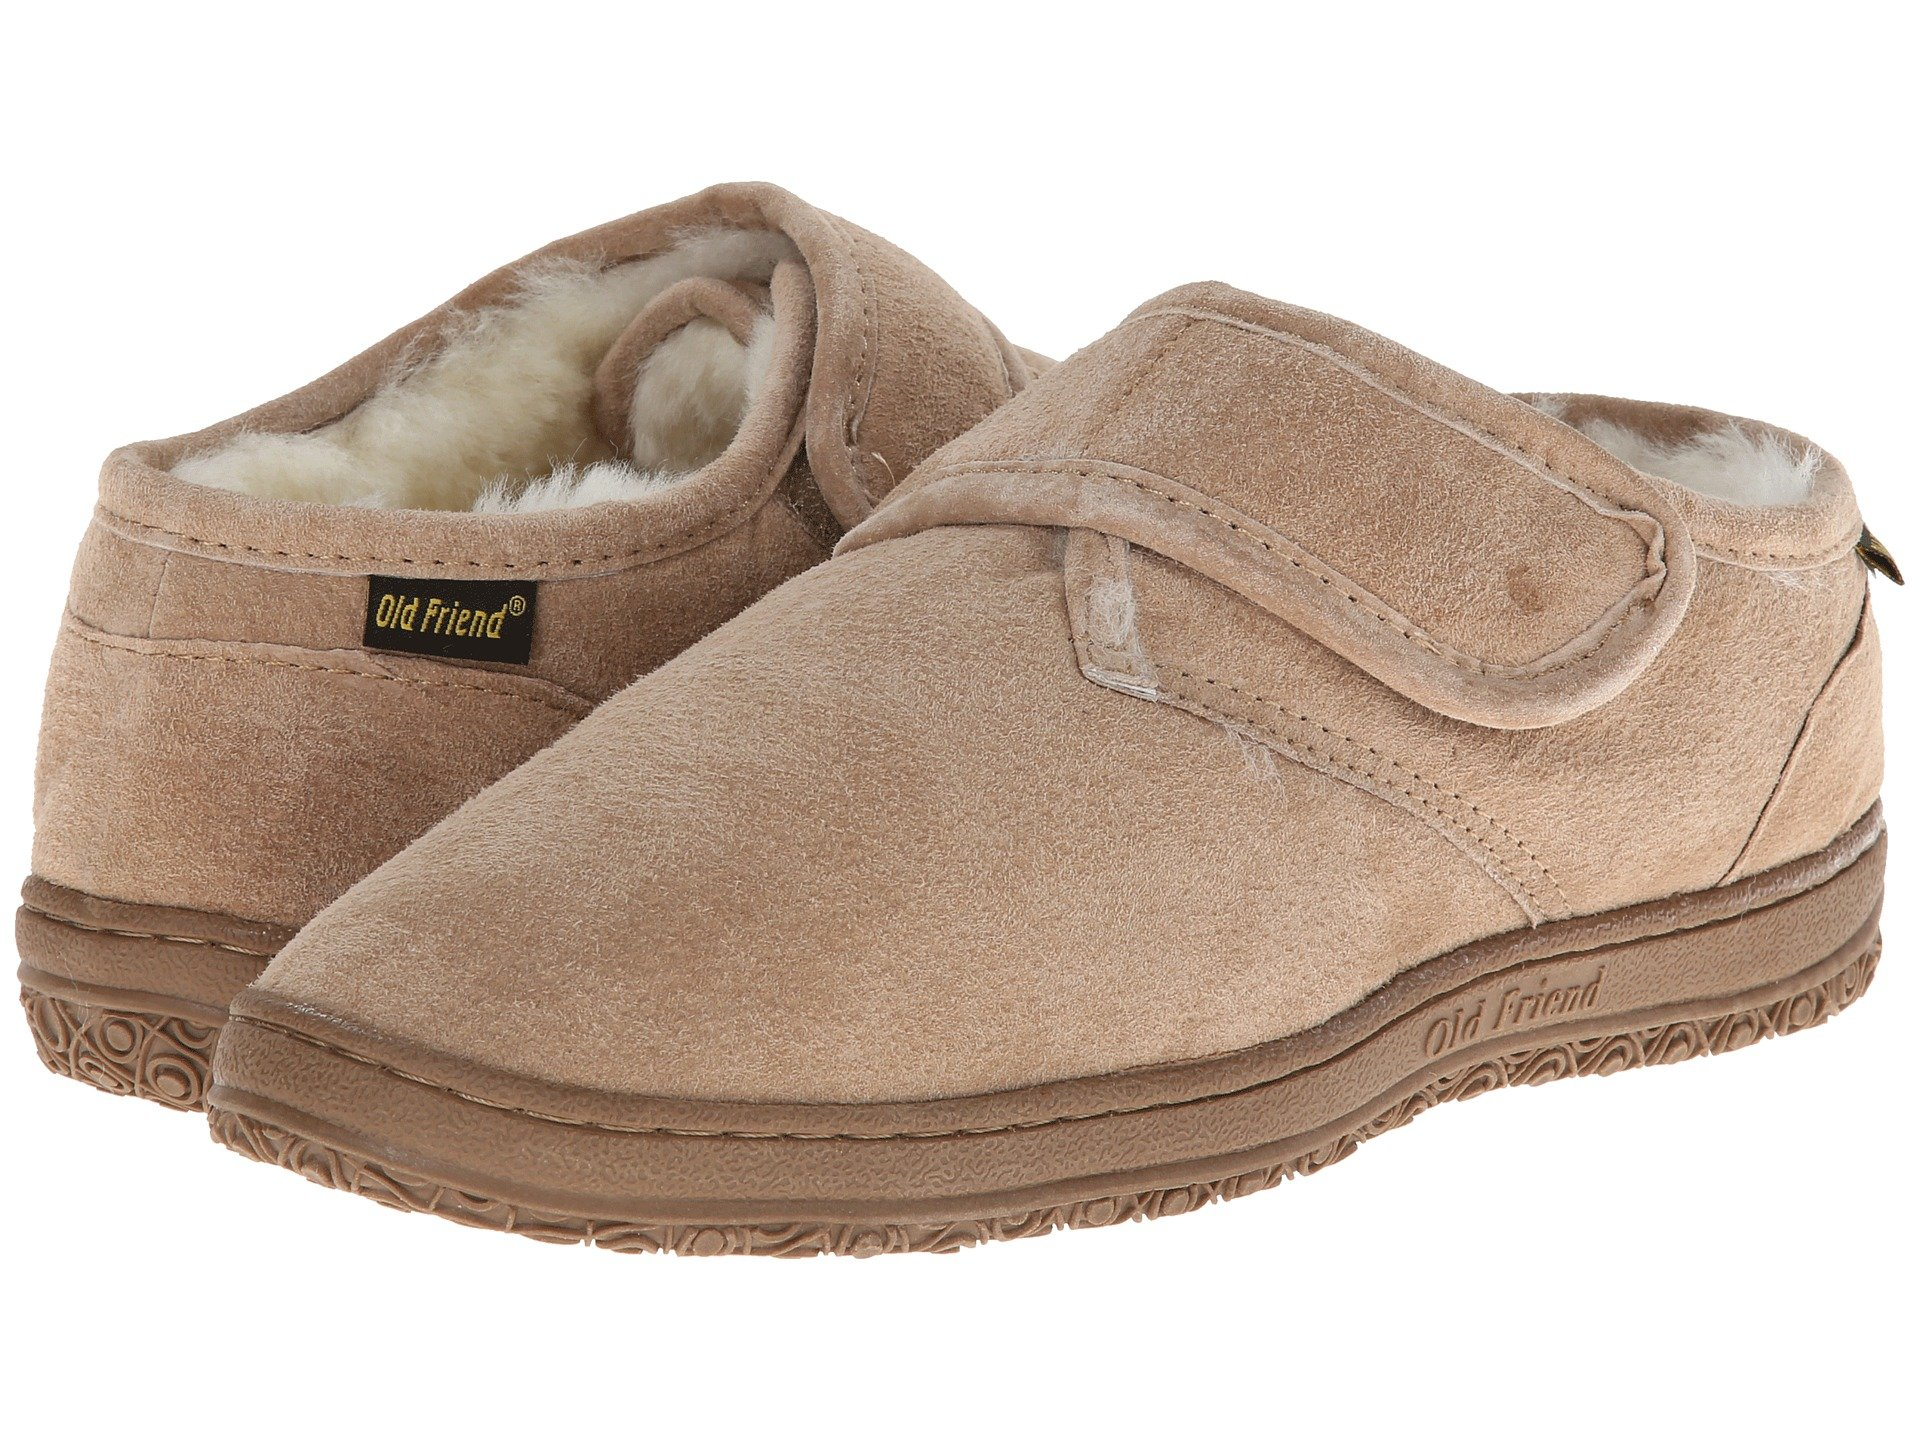 28992e02aa8 Men's Slippers + FREE SHIPPING | Shoes | Zappos.com